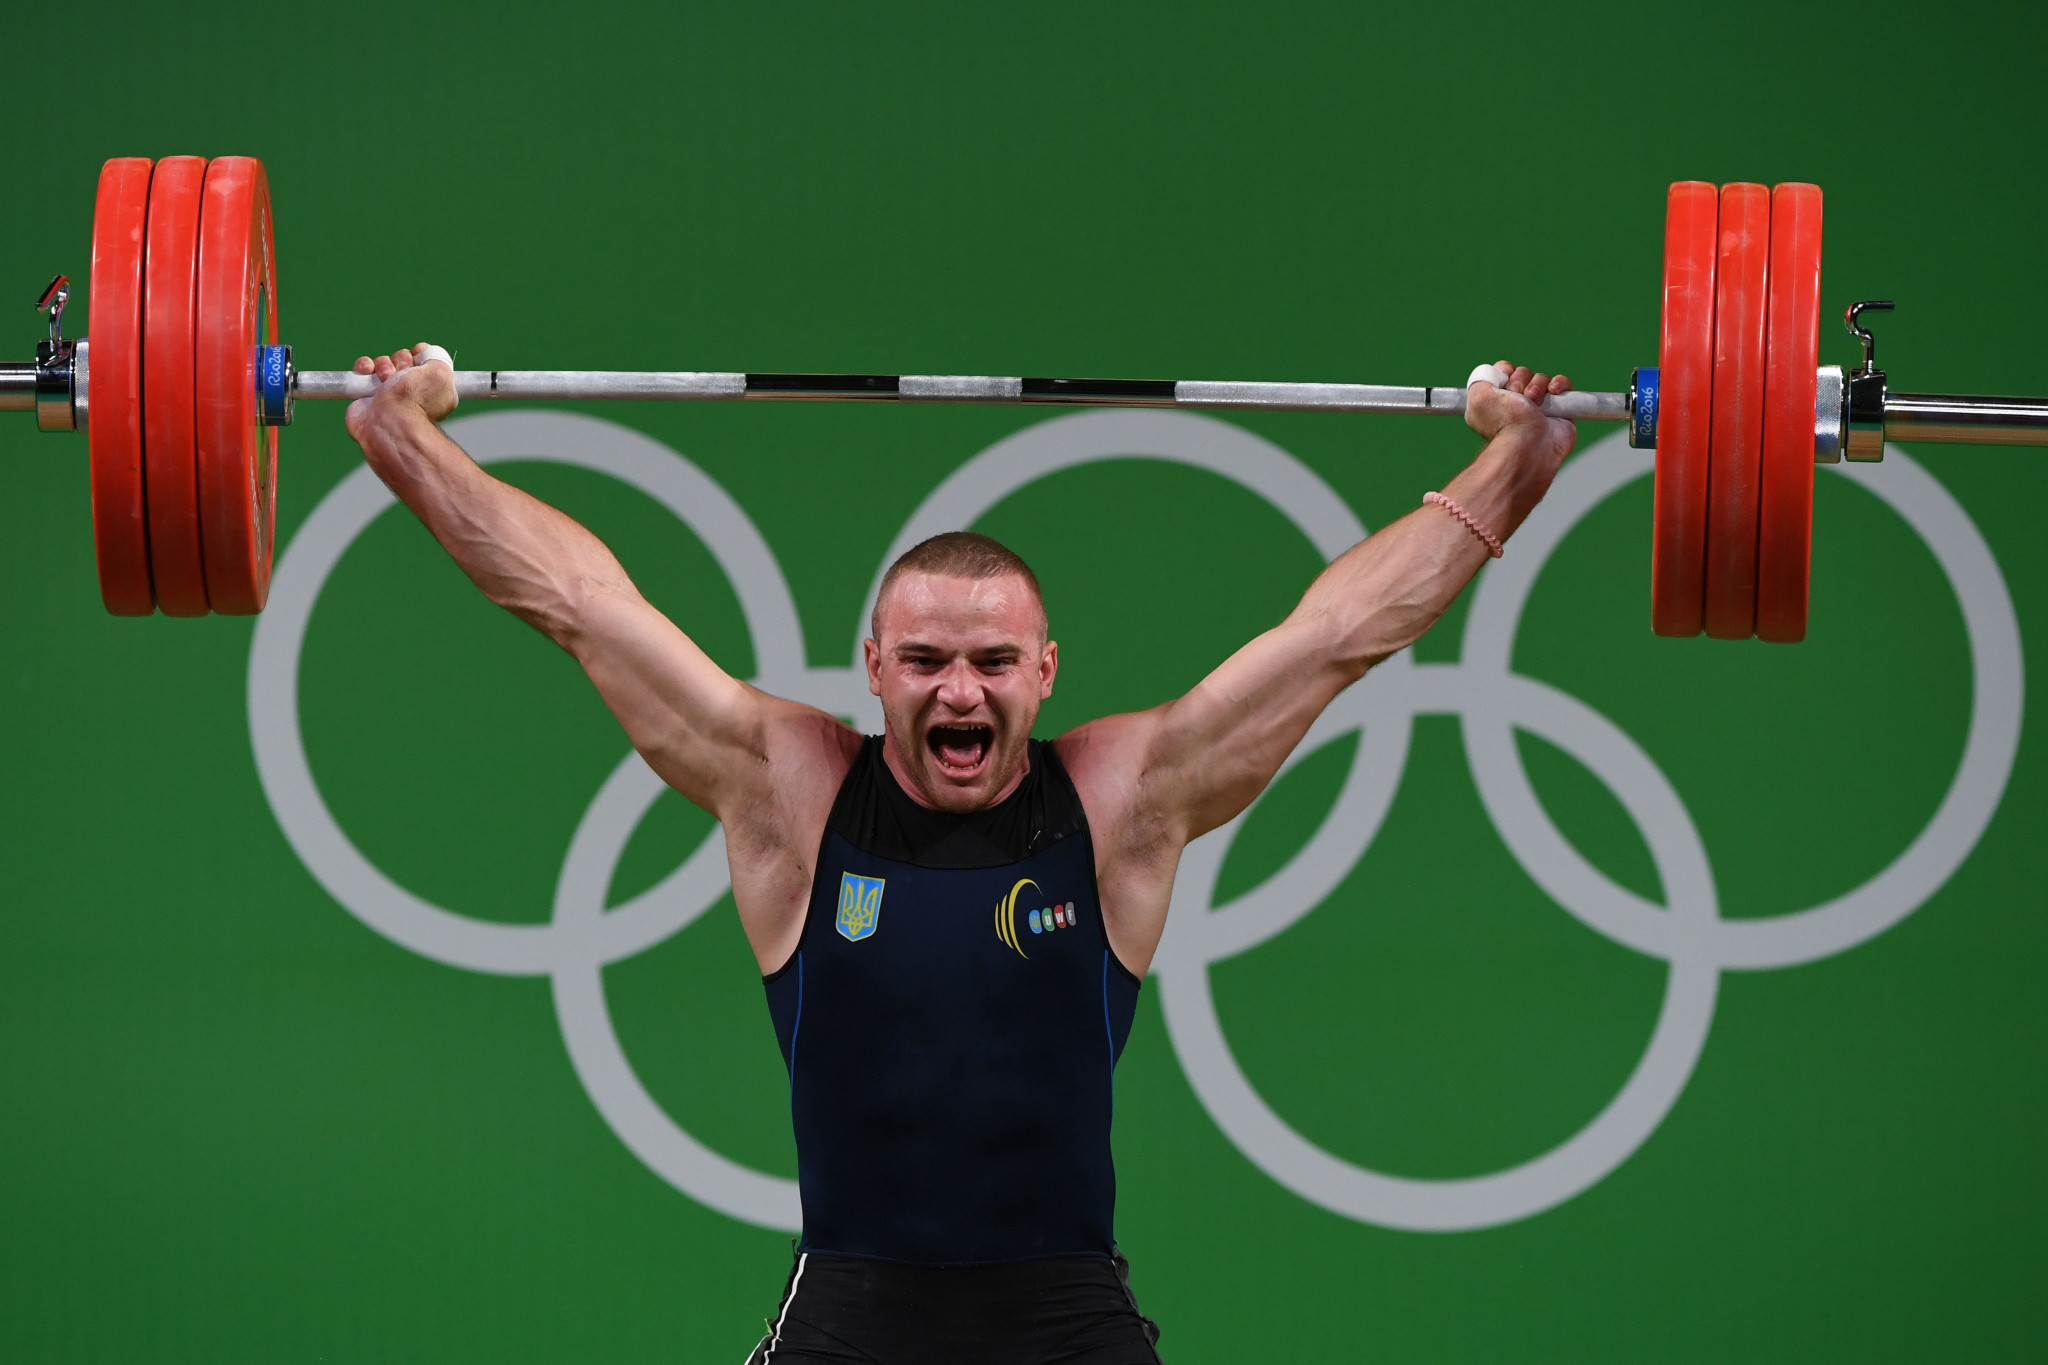 IWF announce drug test failures of two Olympians